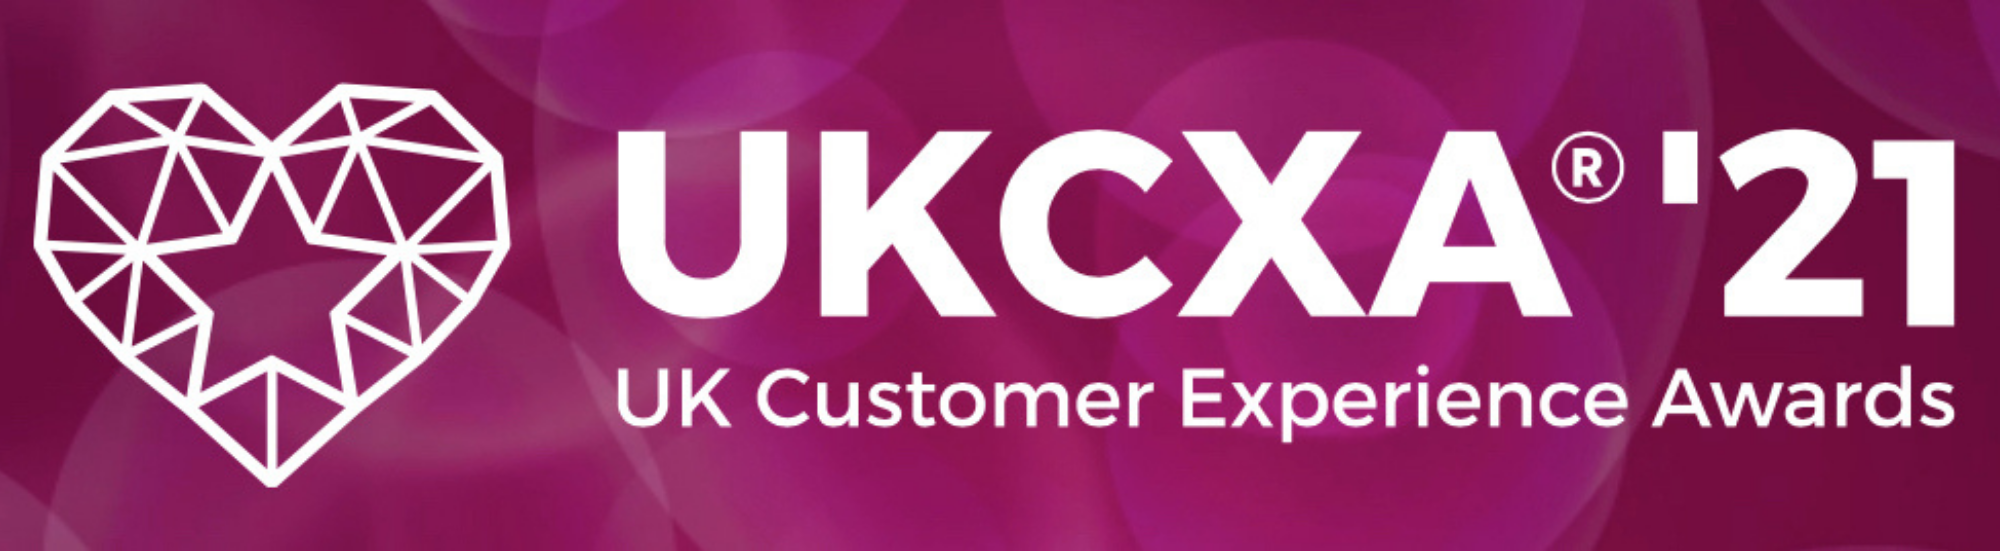 The UK Customer Experience Awards 2021 are now open